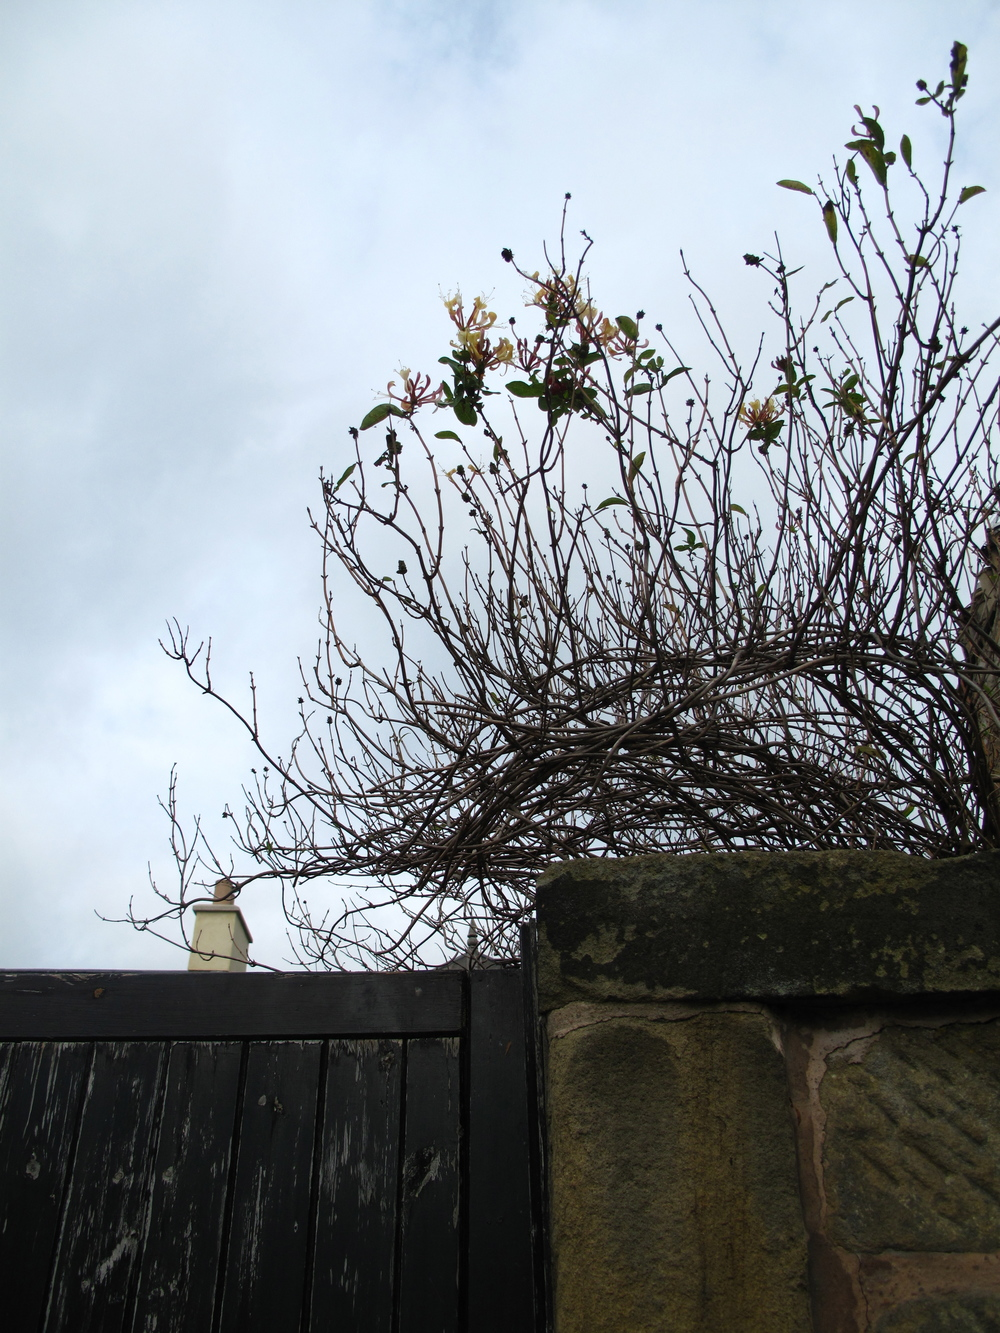 Flowers over a fence in the small village of Duddingston, Edinburgh.